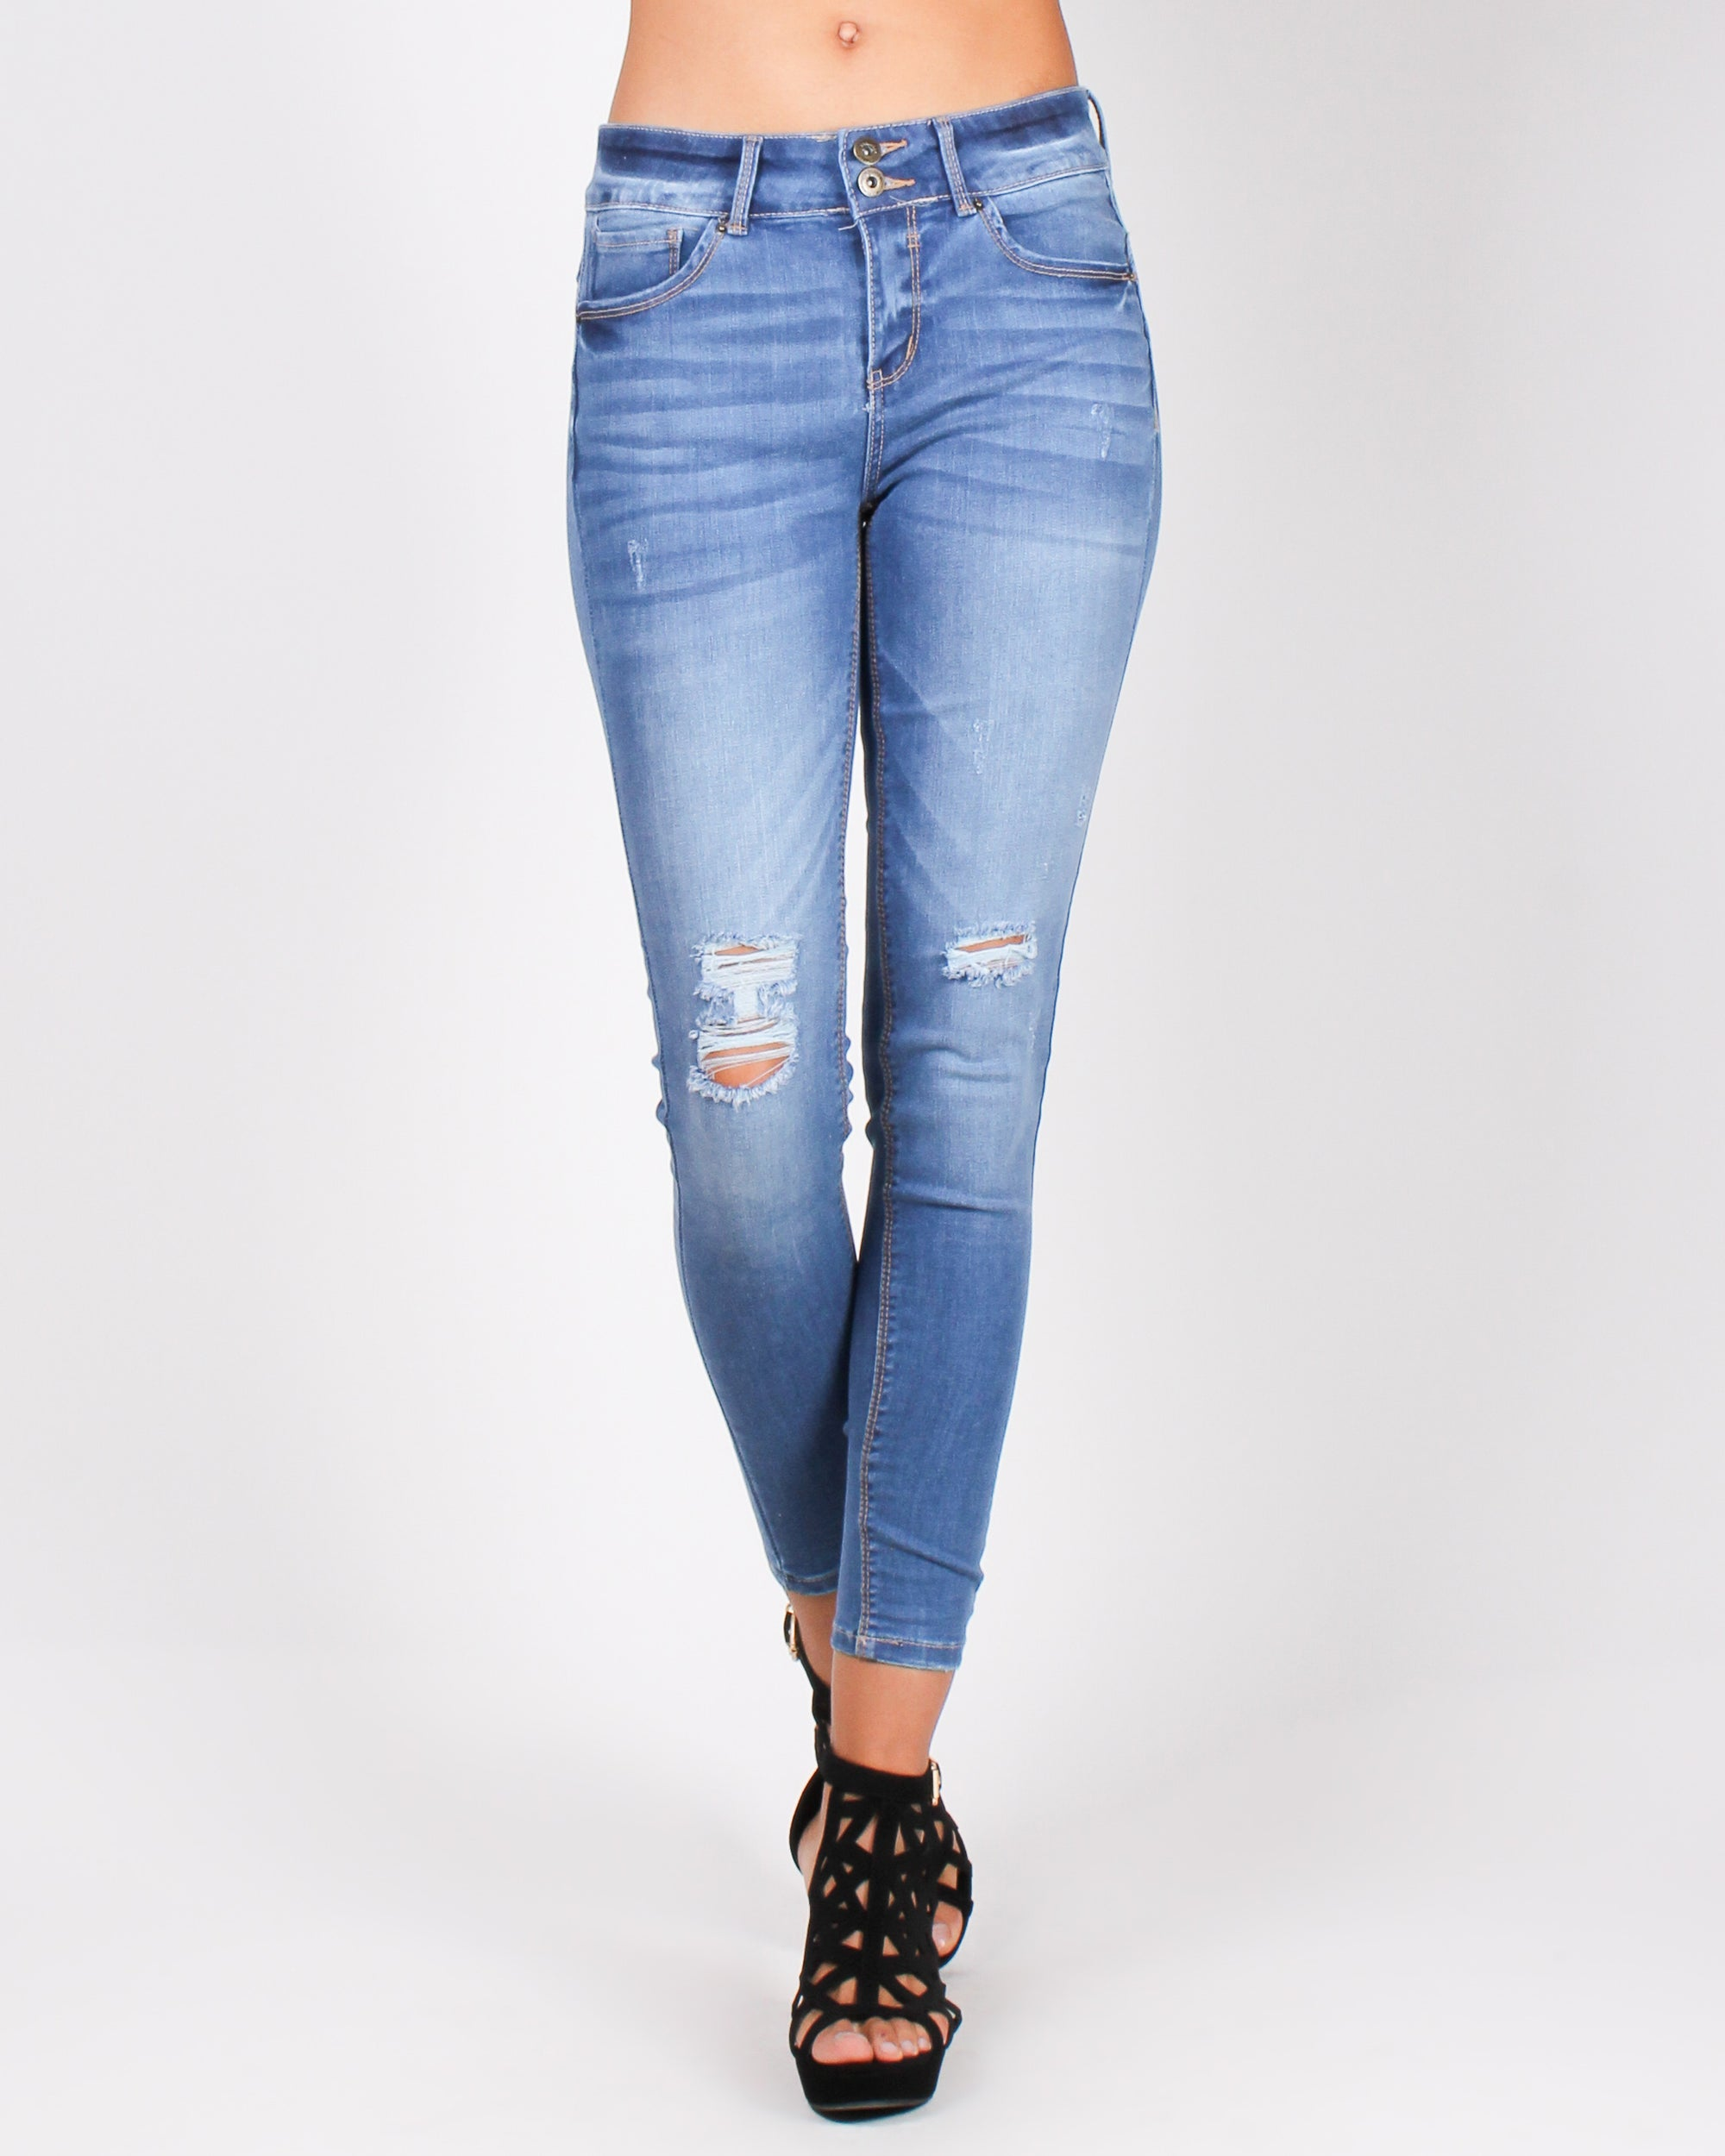 Fashion Q Shop Q Back That Ass-et Skinny Jeans (Medium) 90135